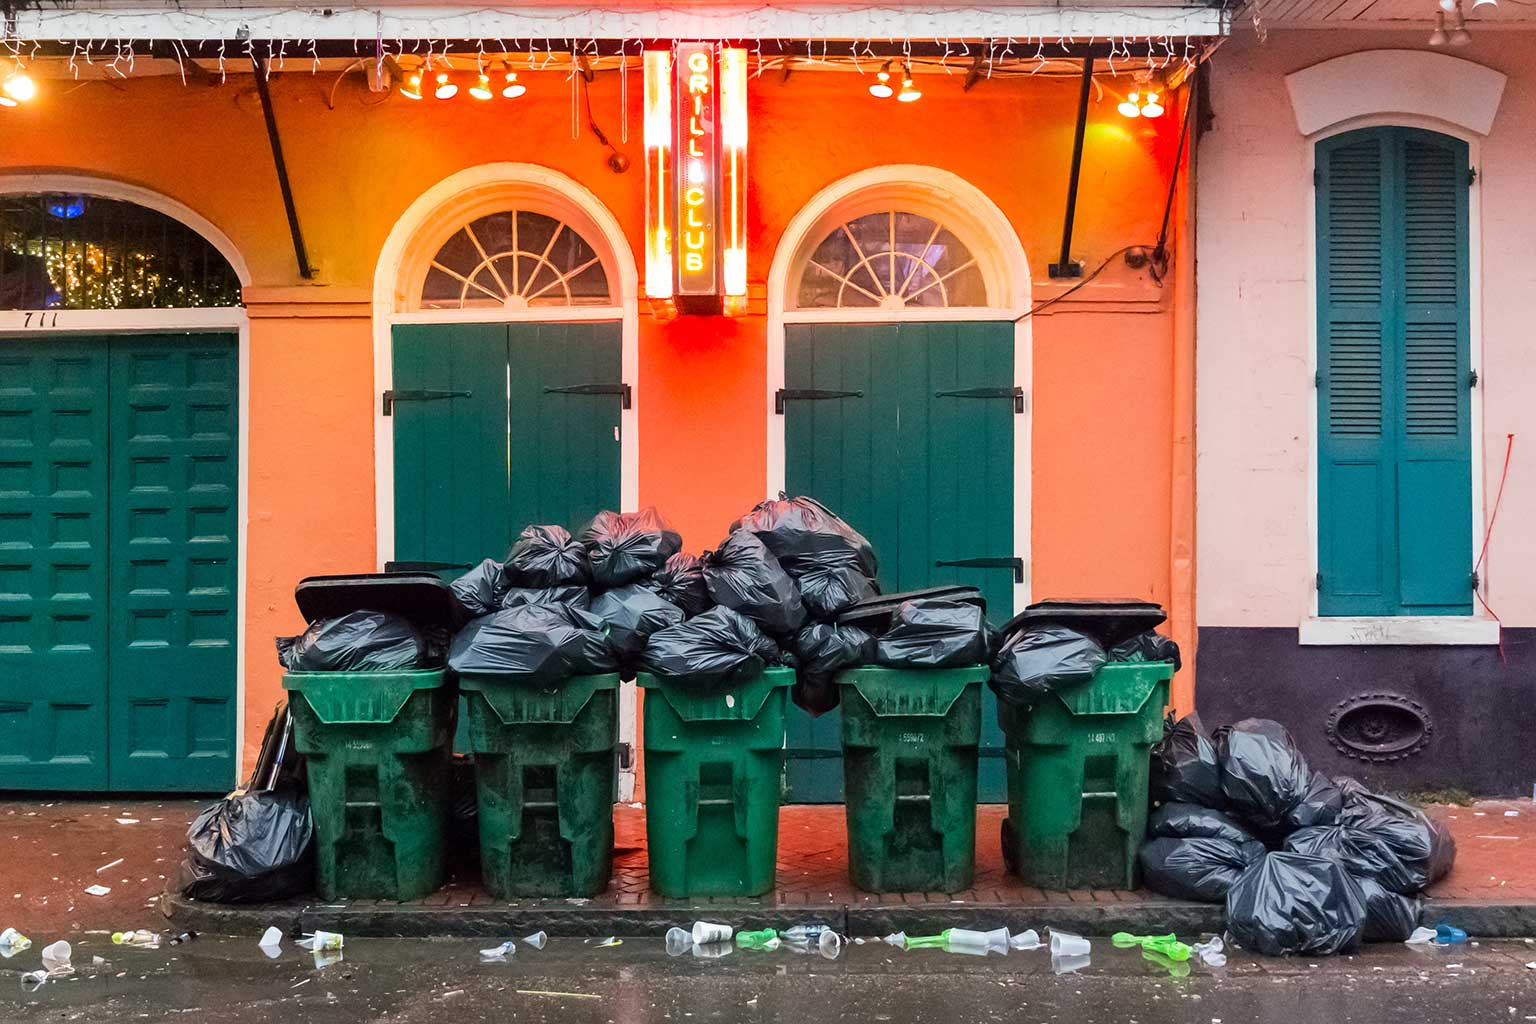 Trash cans in French Quarter